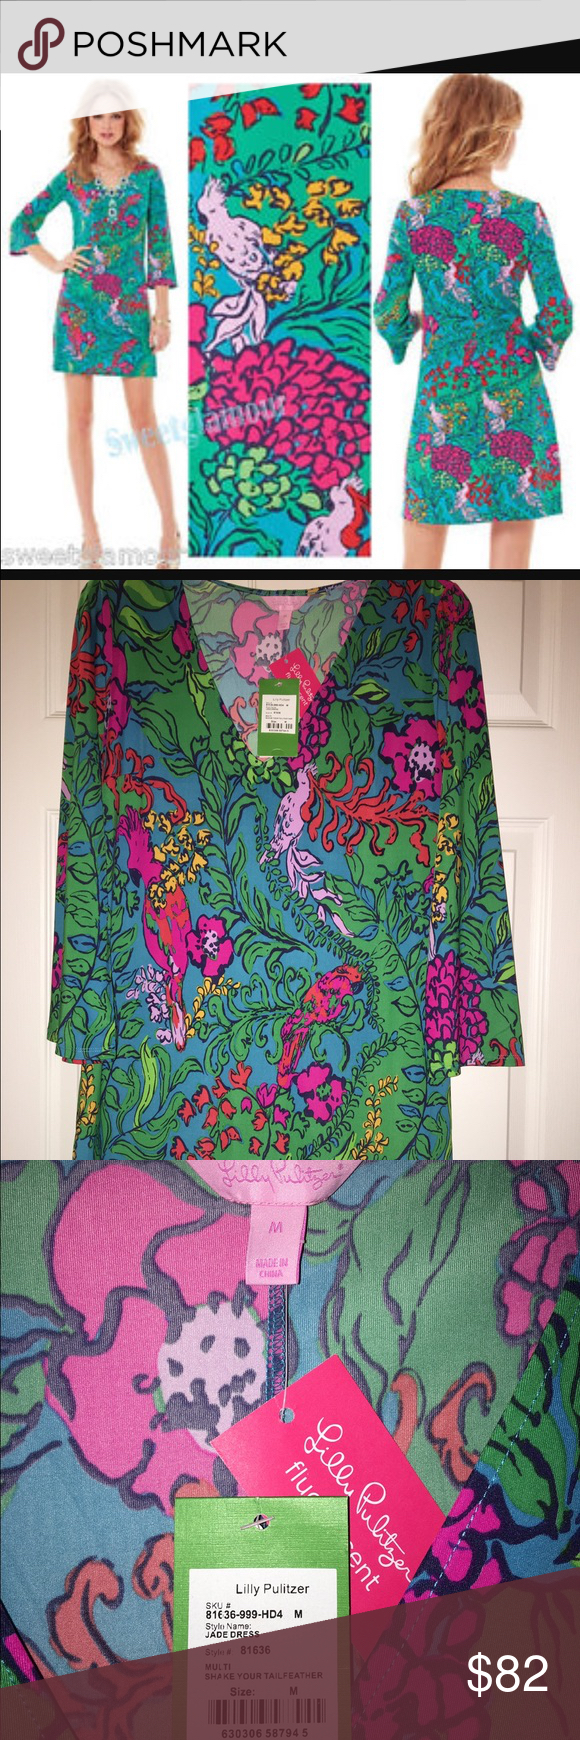 Selling this Lilly Pulitzer shake your tail feathers dress M on Poshmark! My username is: bralla. #shopmycloset #poshmark #fashion #shopping #style #forsale #Lilly Pulitzer #Dresses & Skirts